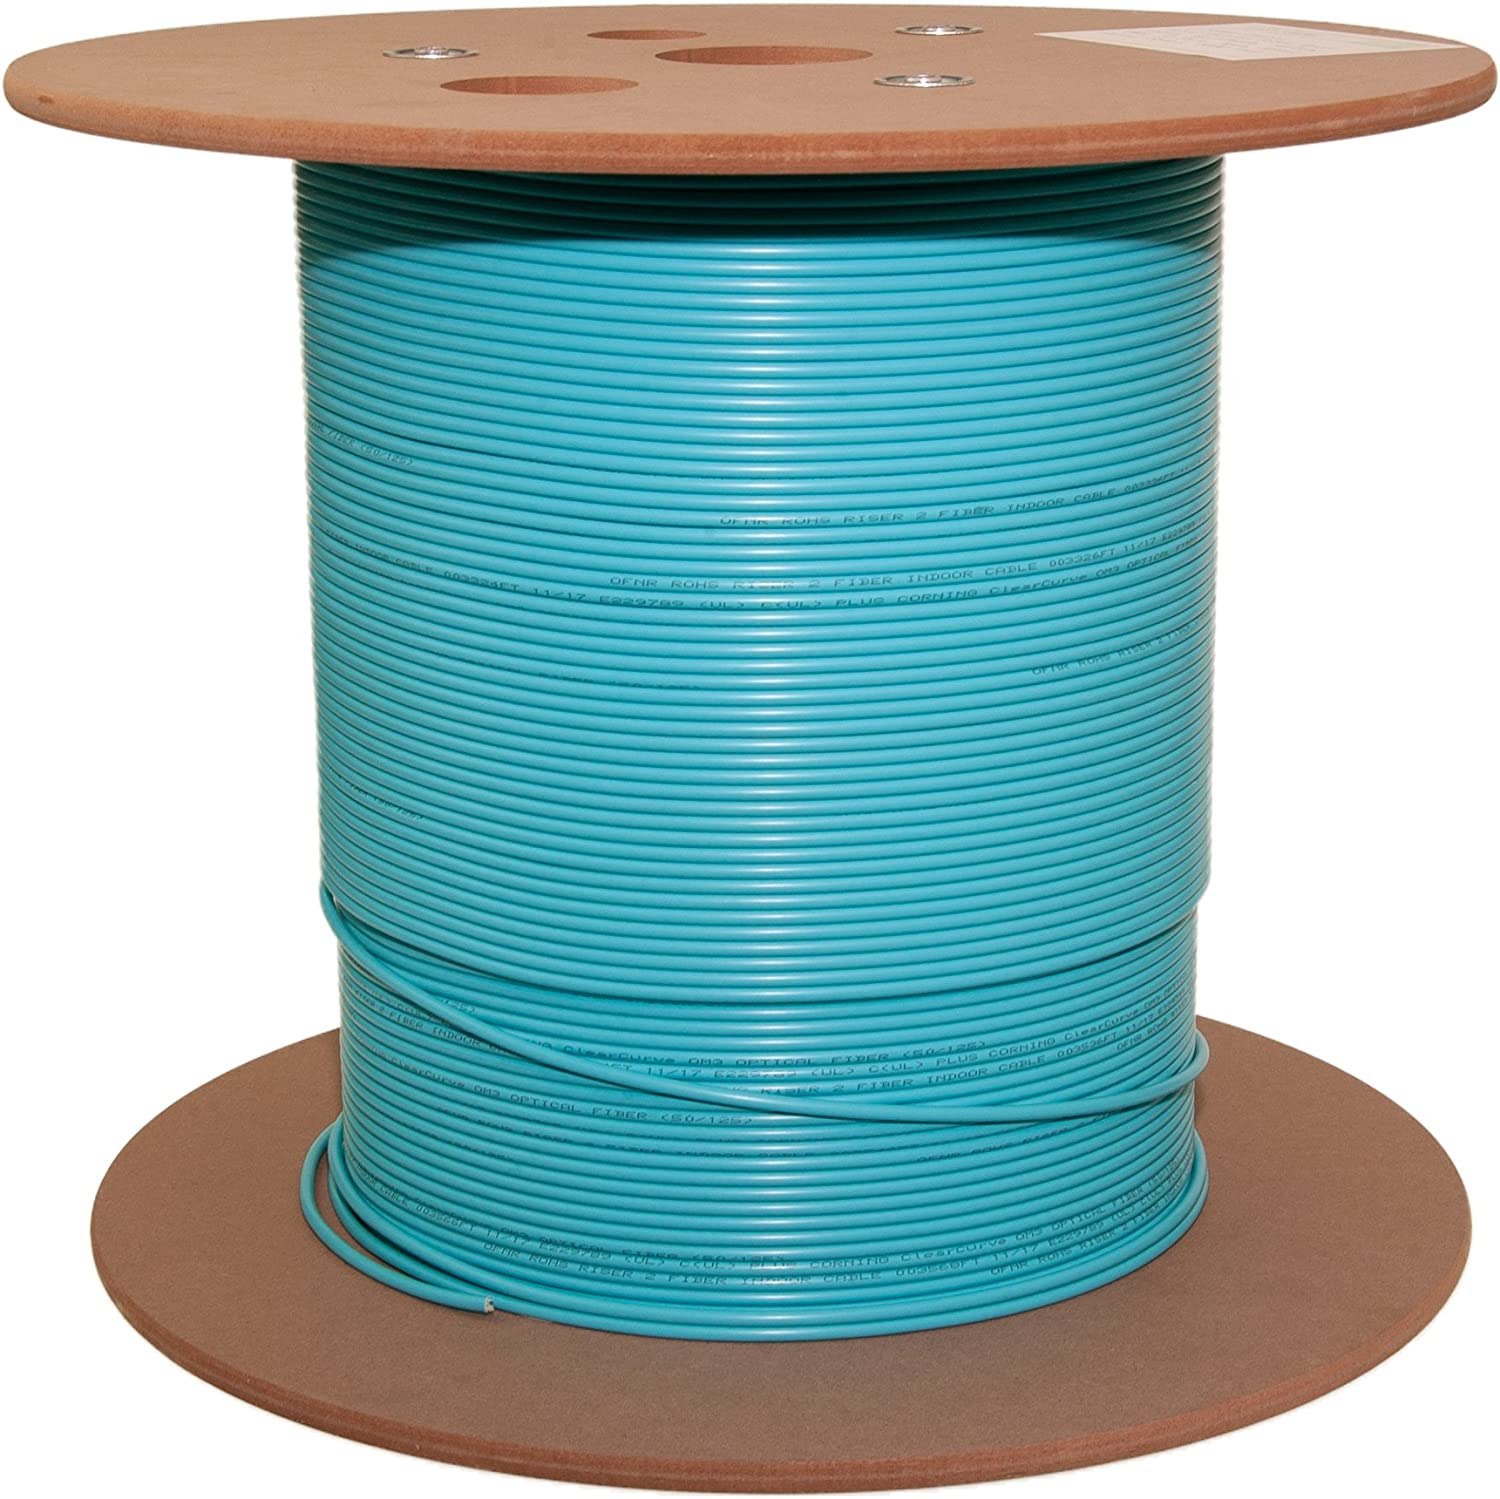 6 Fiber Indoor Distribution Fiber Optic Cable 50//125 1000 Foot Spool OM3 10 Gbit Riser Rated Aqua Multimode